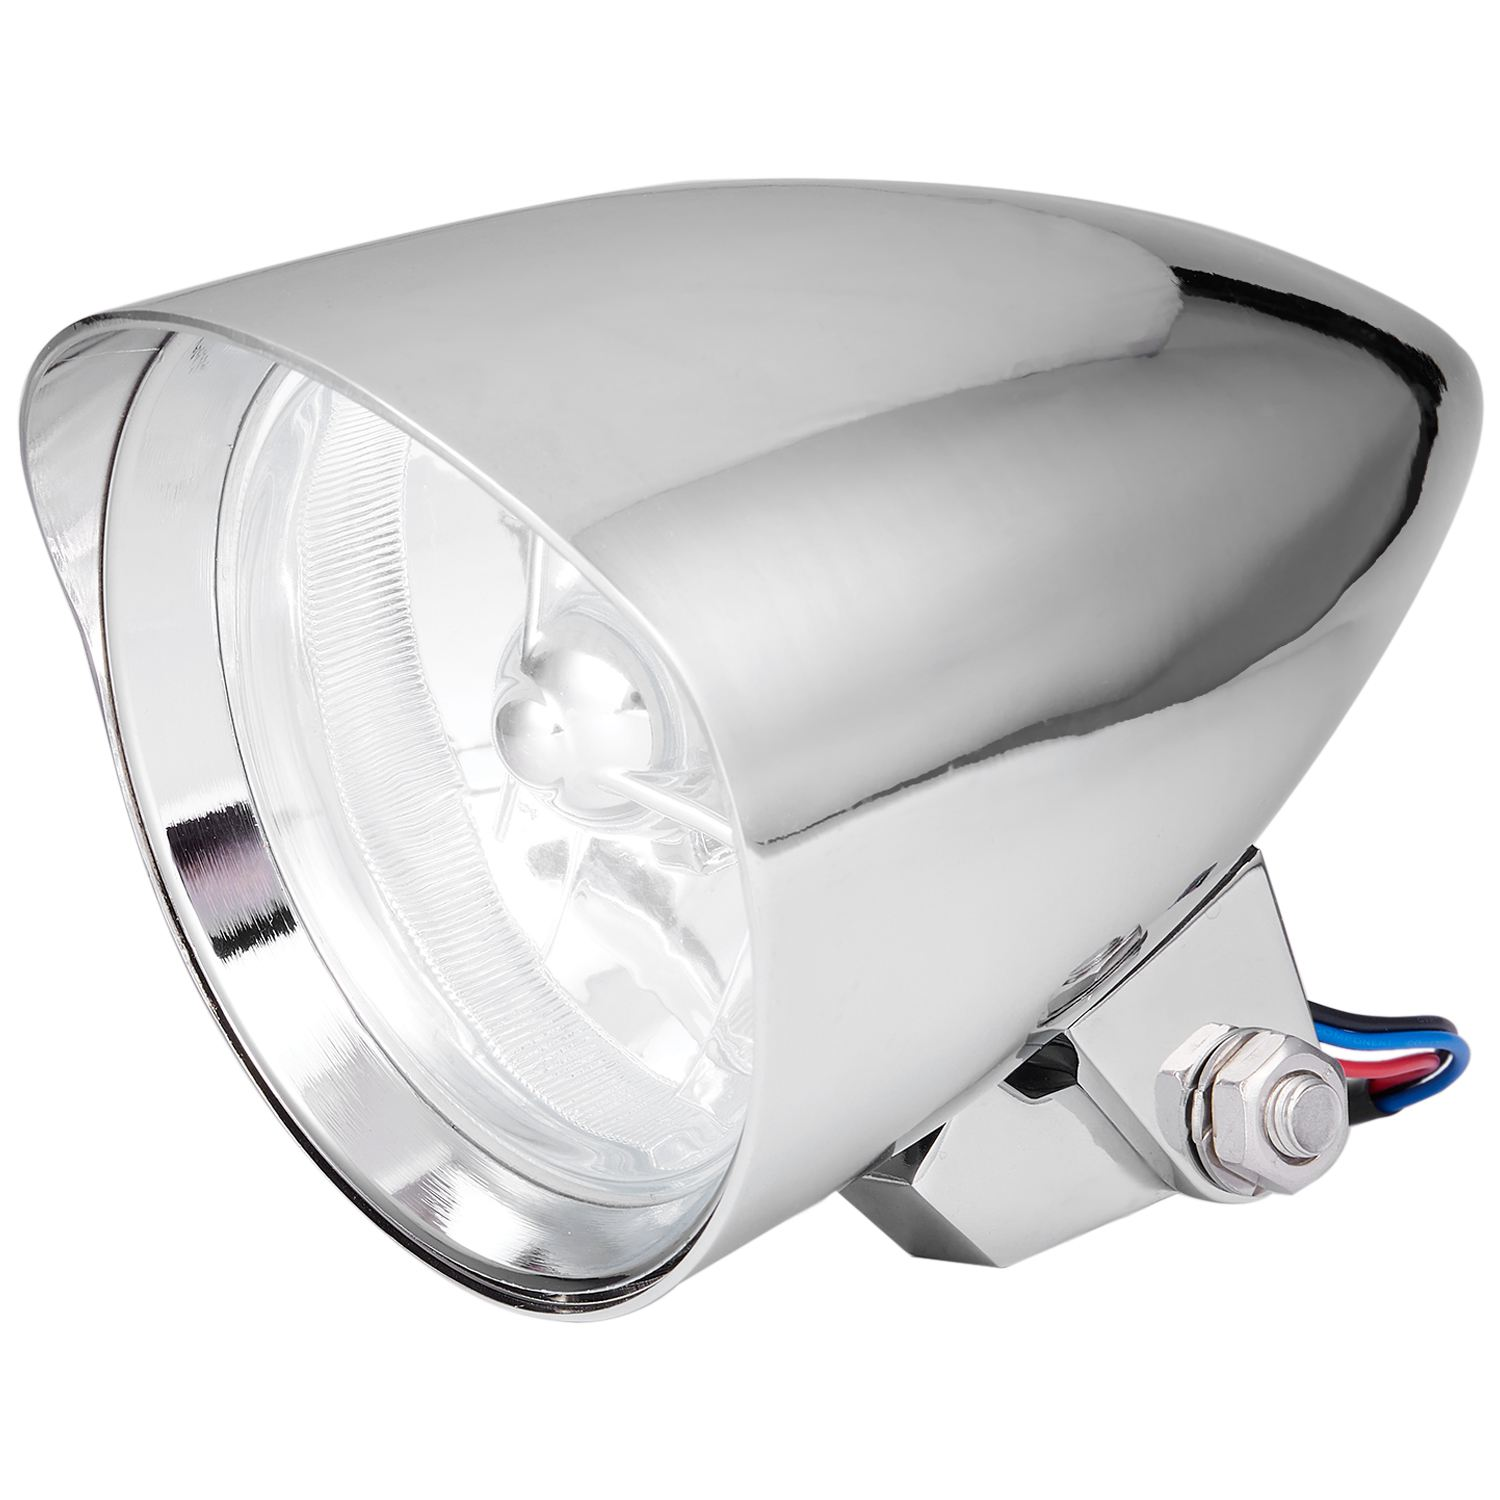 7 INCH Motorcycles Headlight for Harley Davison Choppers 7 inch motorcycles headlight for harley davison choppers